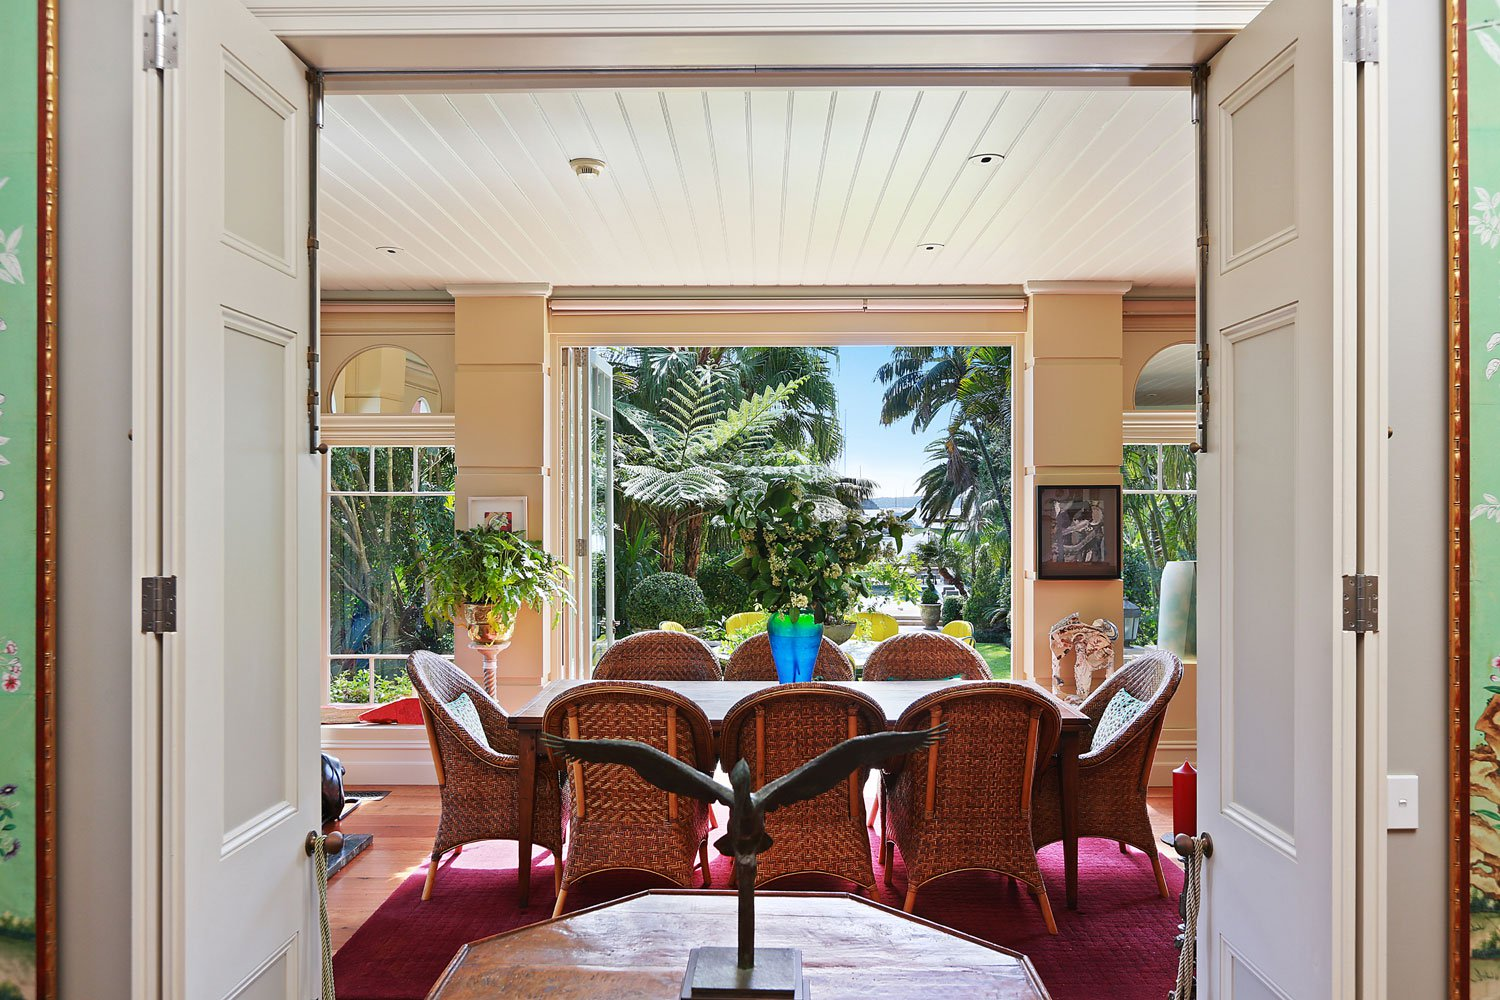 The home's openness is evident in this airy view through the lounge room to the yard and bay beyond.